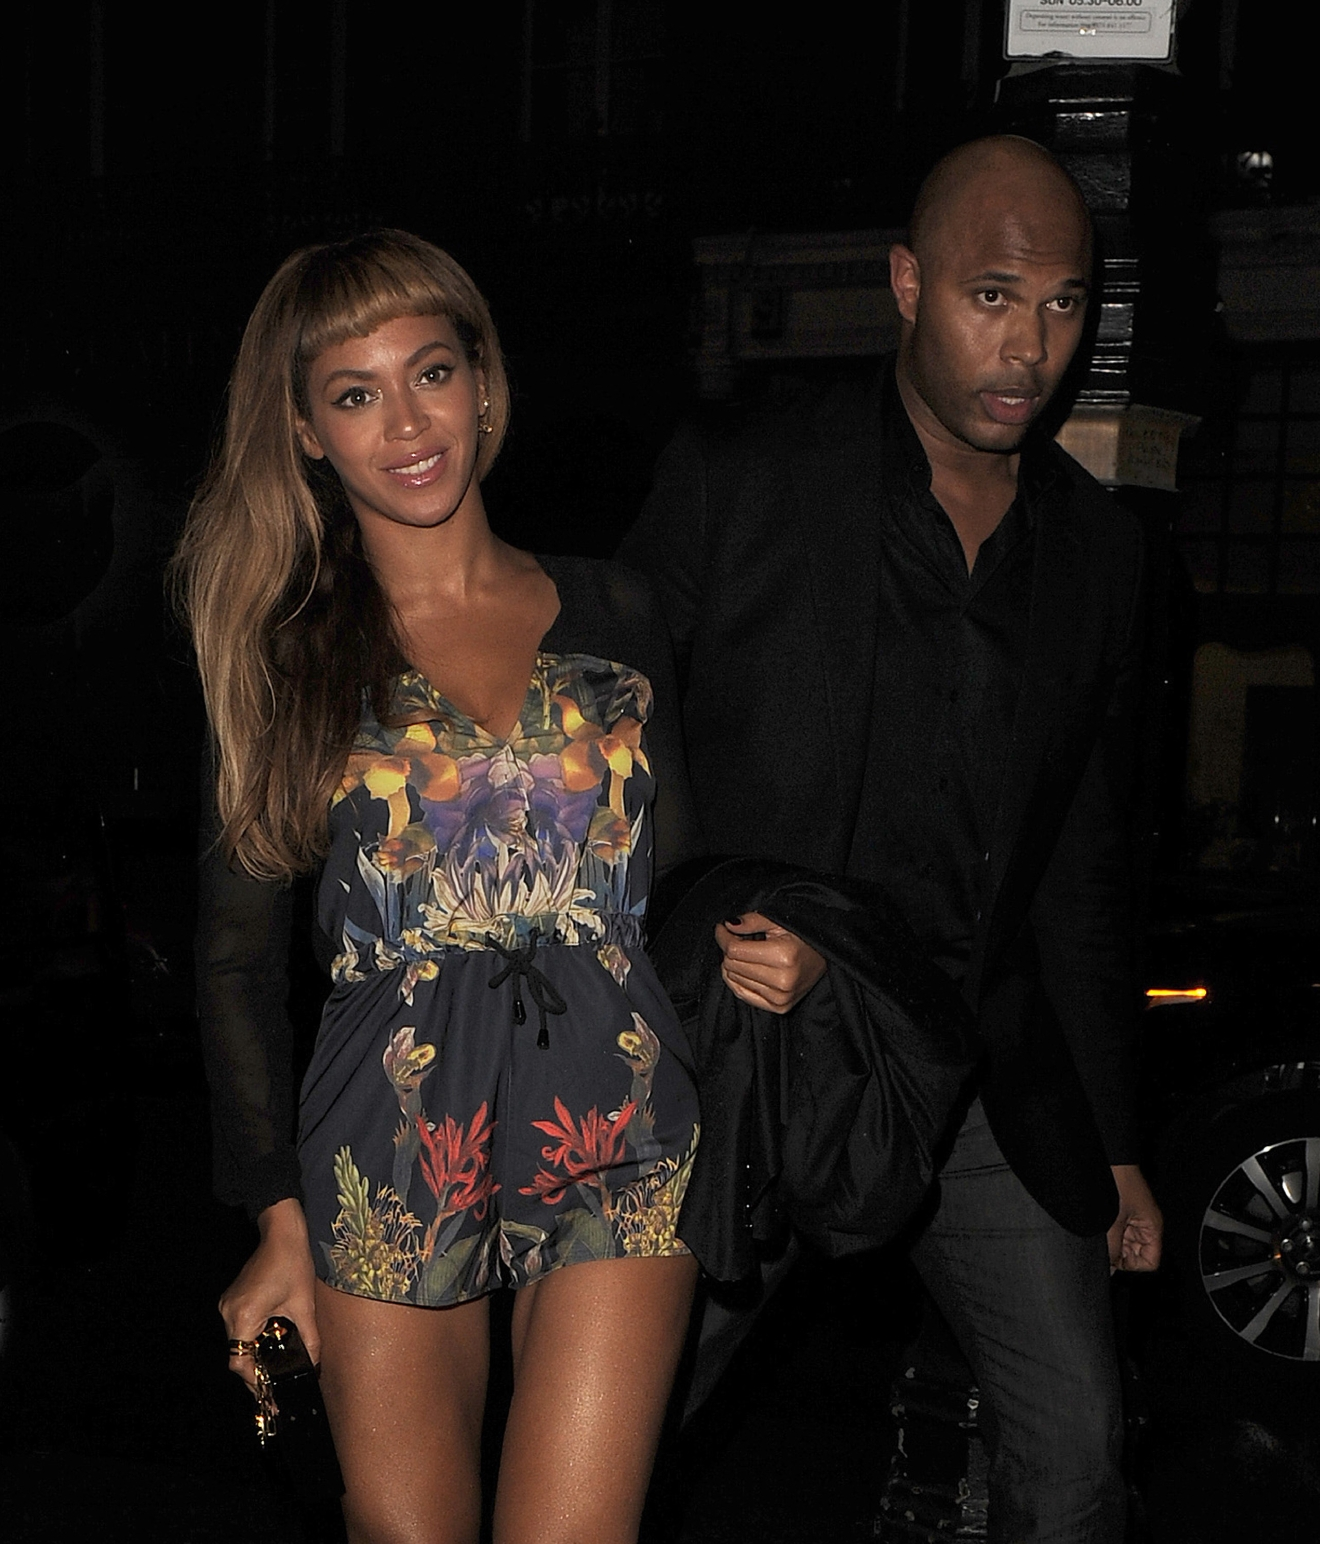 Beyonce Knowles and Jay-Z enjoy a dinner date at Harry's Bar in Mayfair on Oct. 17, 2014. (Will Alexander/WENN.com)